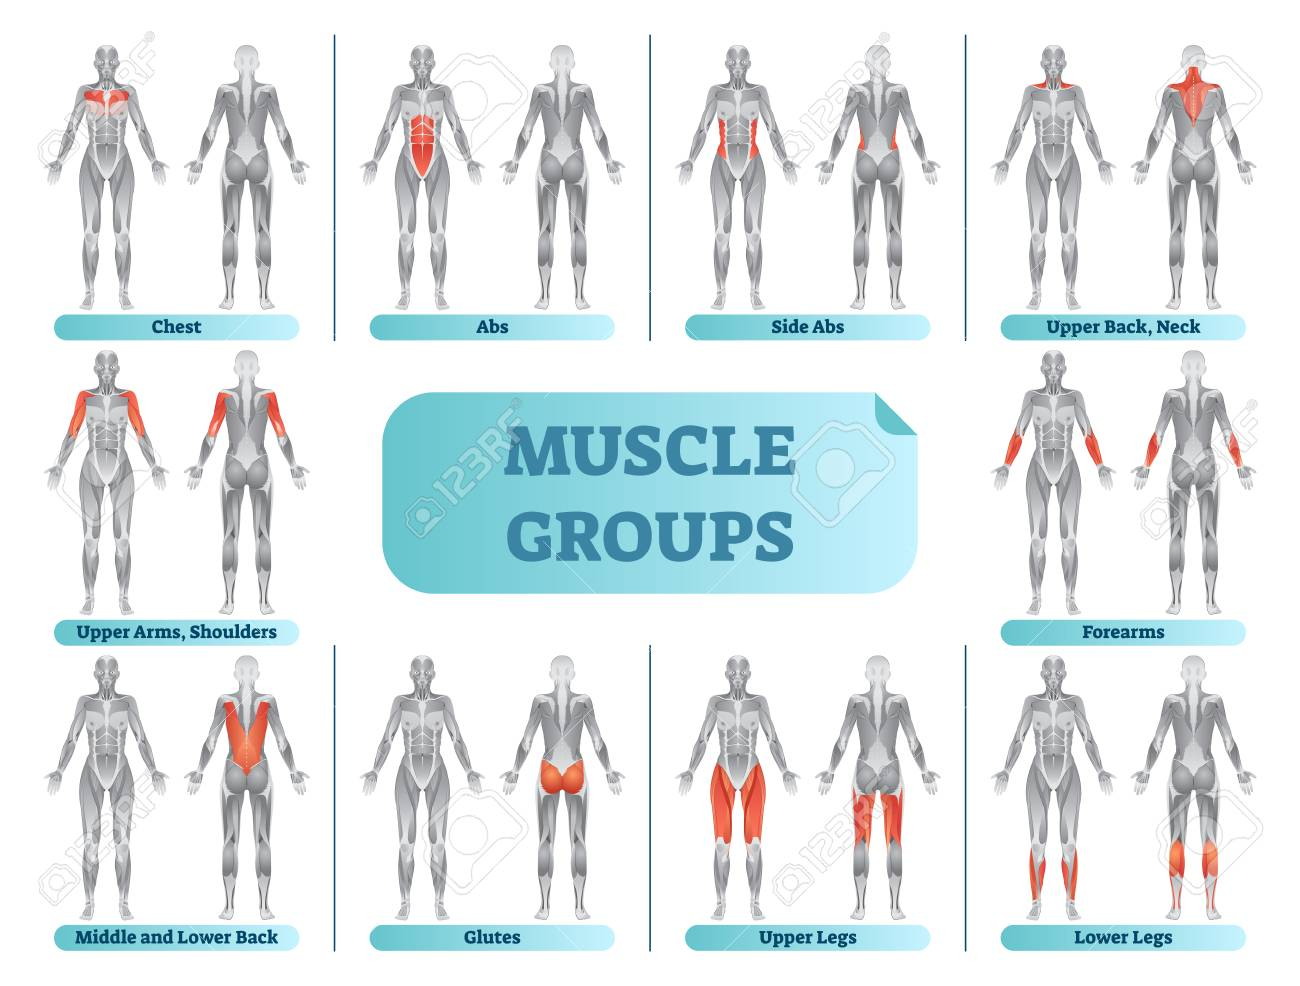 Female muscle groups anatomical fitness vector illustration, sports training informative chart. - 102093634